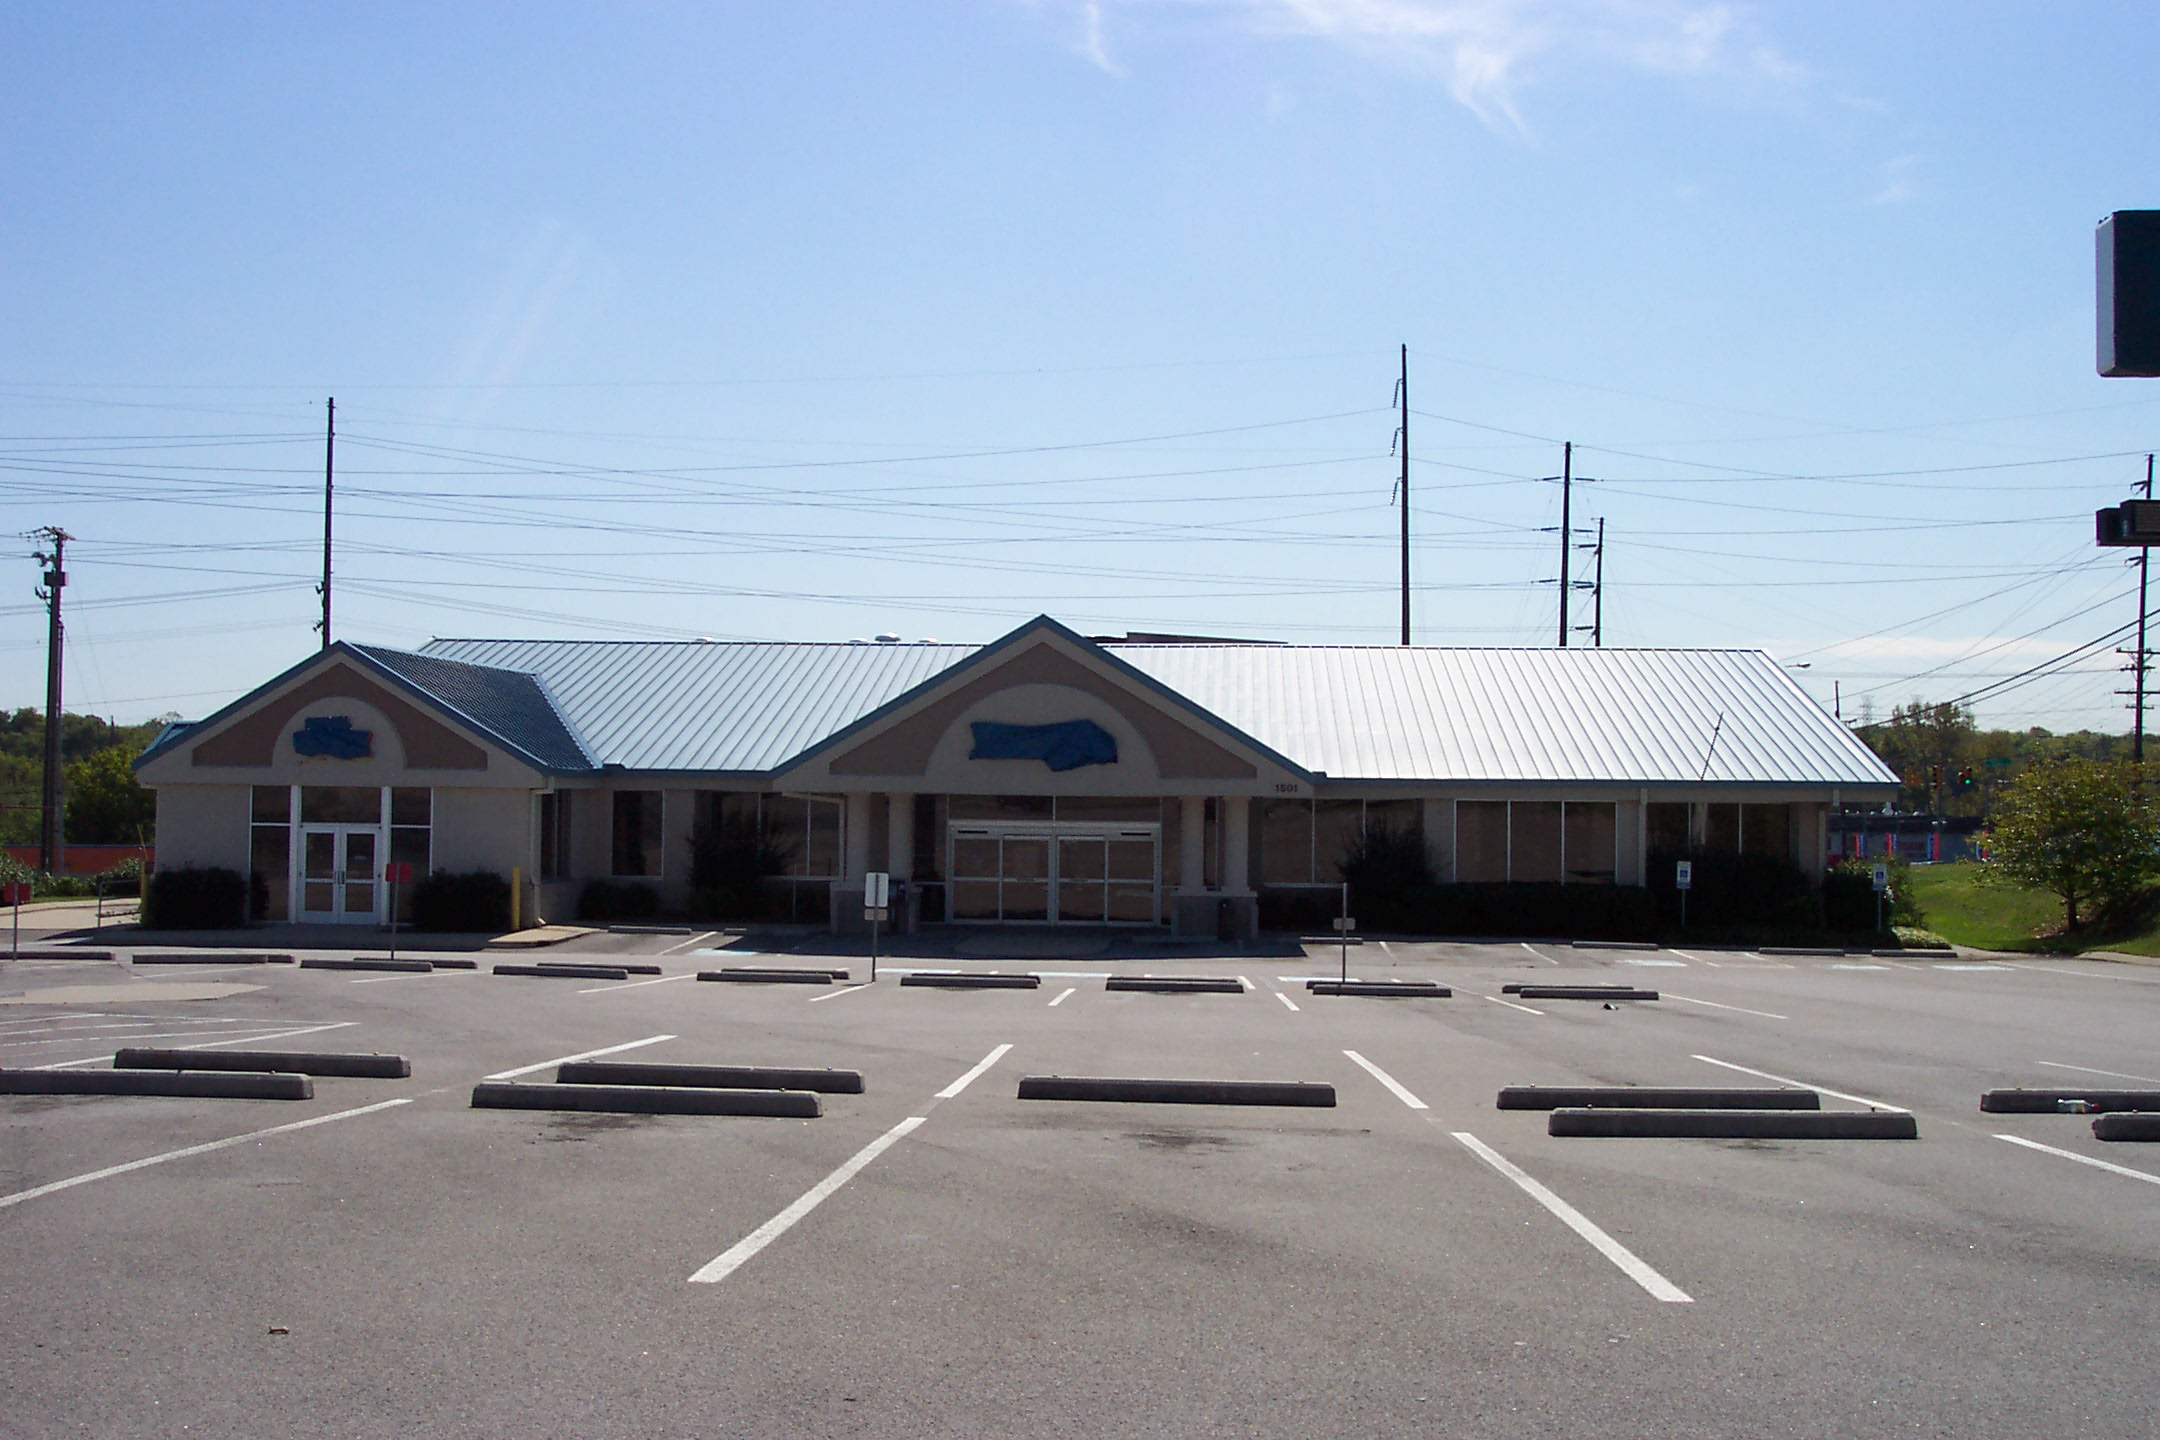 The Closing of Luby's in 2003